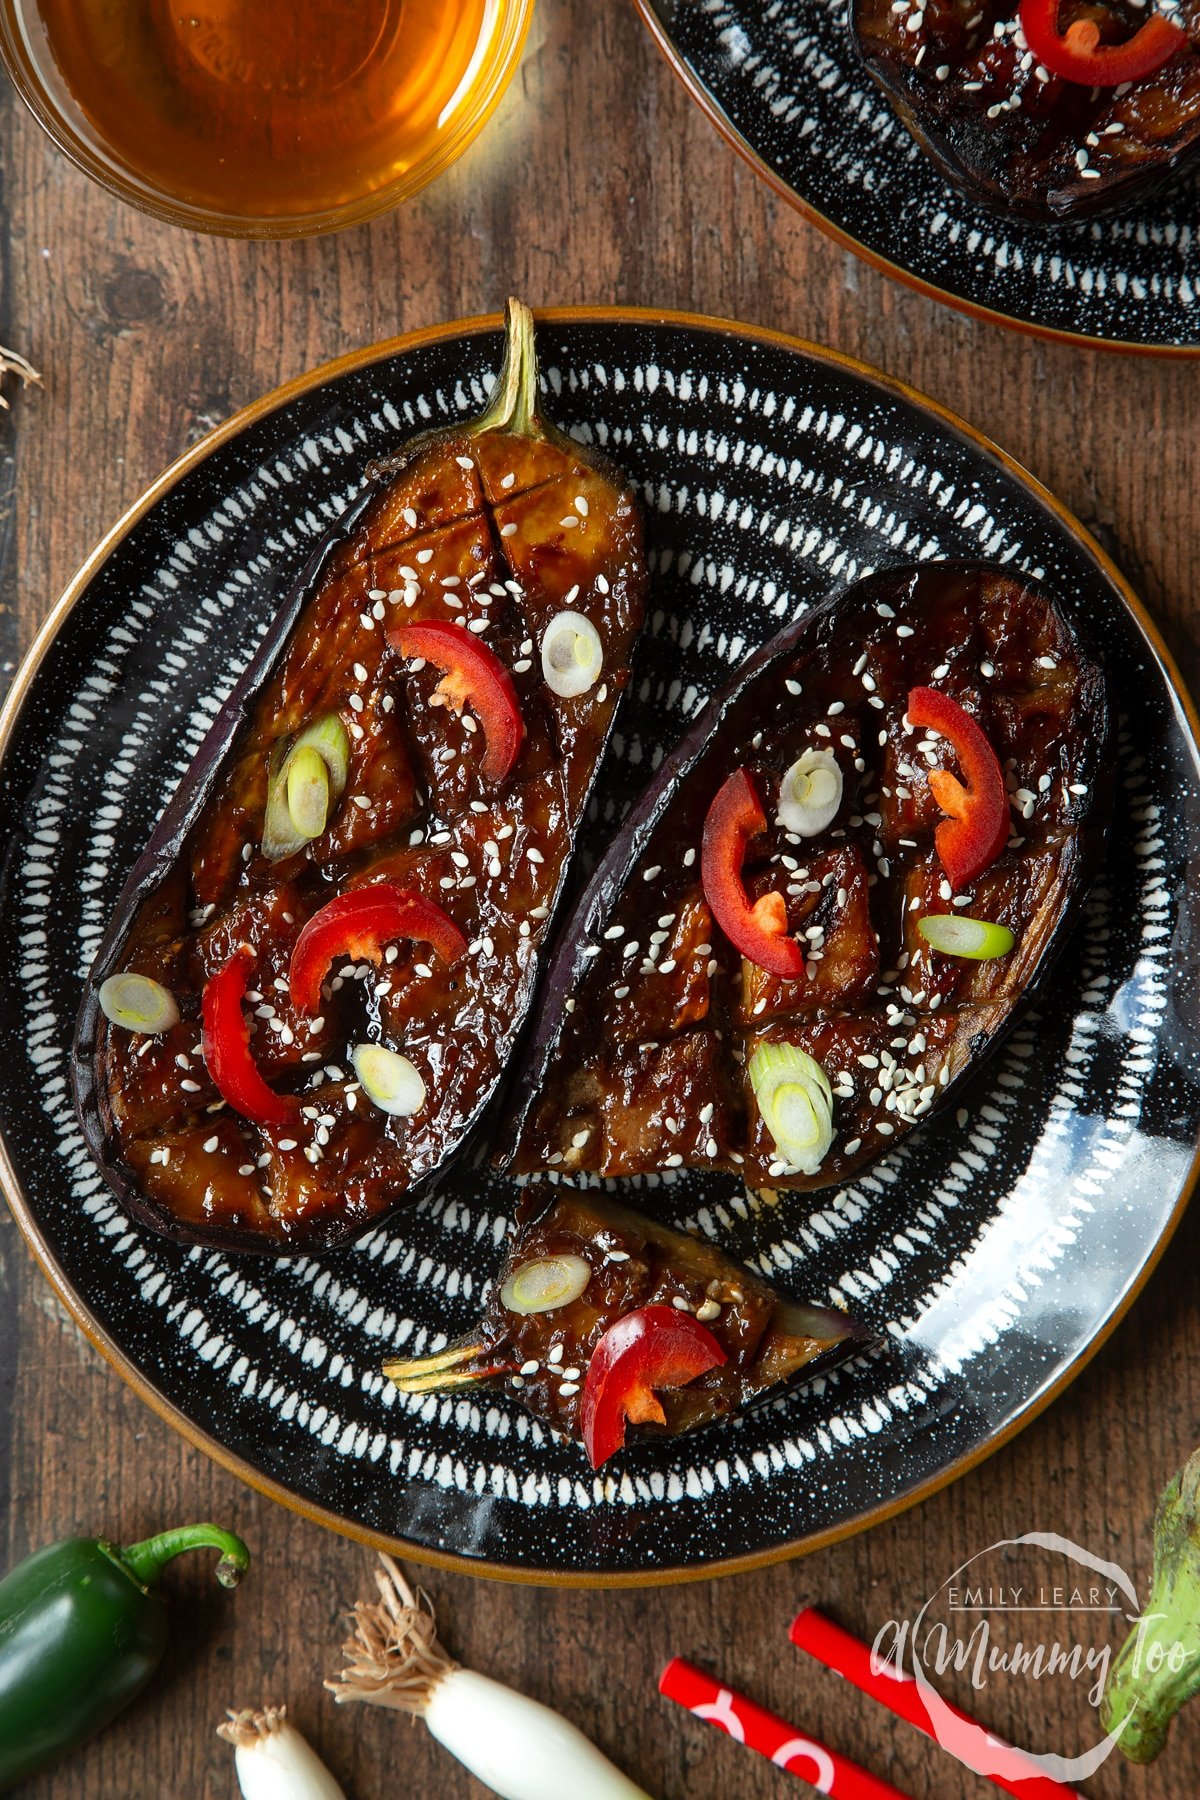 Two slices of miso aubergine on a plate, topped with chilli, springs onions and sesame seeds. One piece has been sliced.